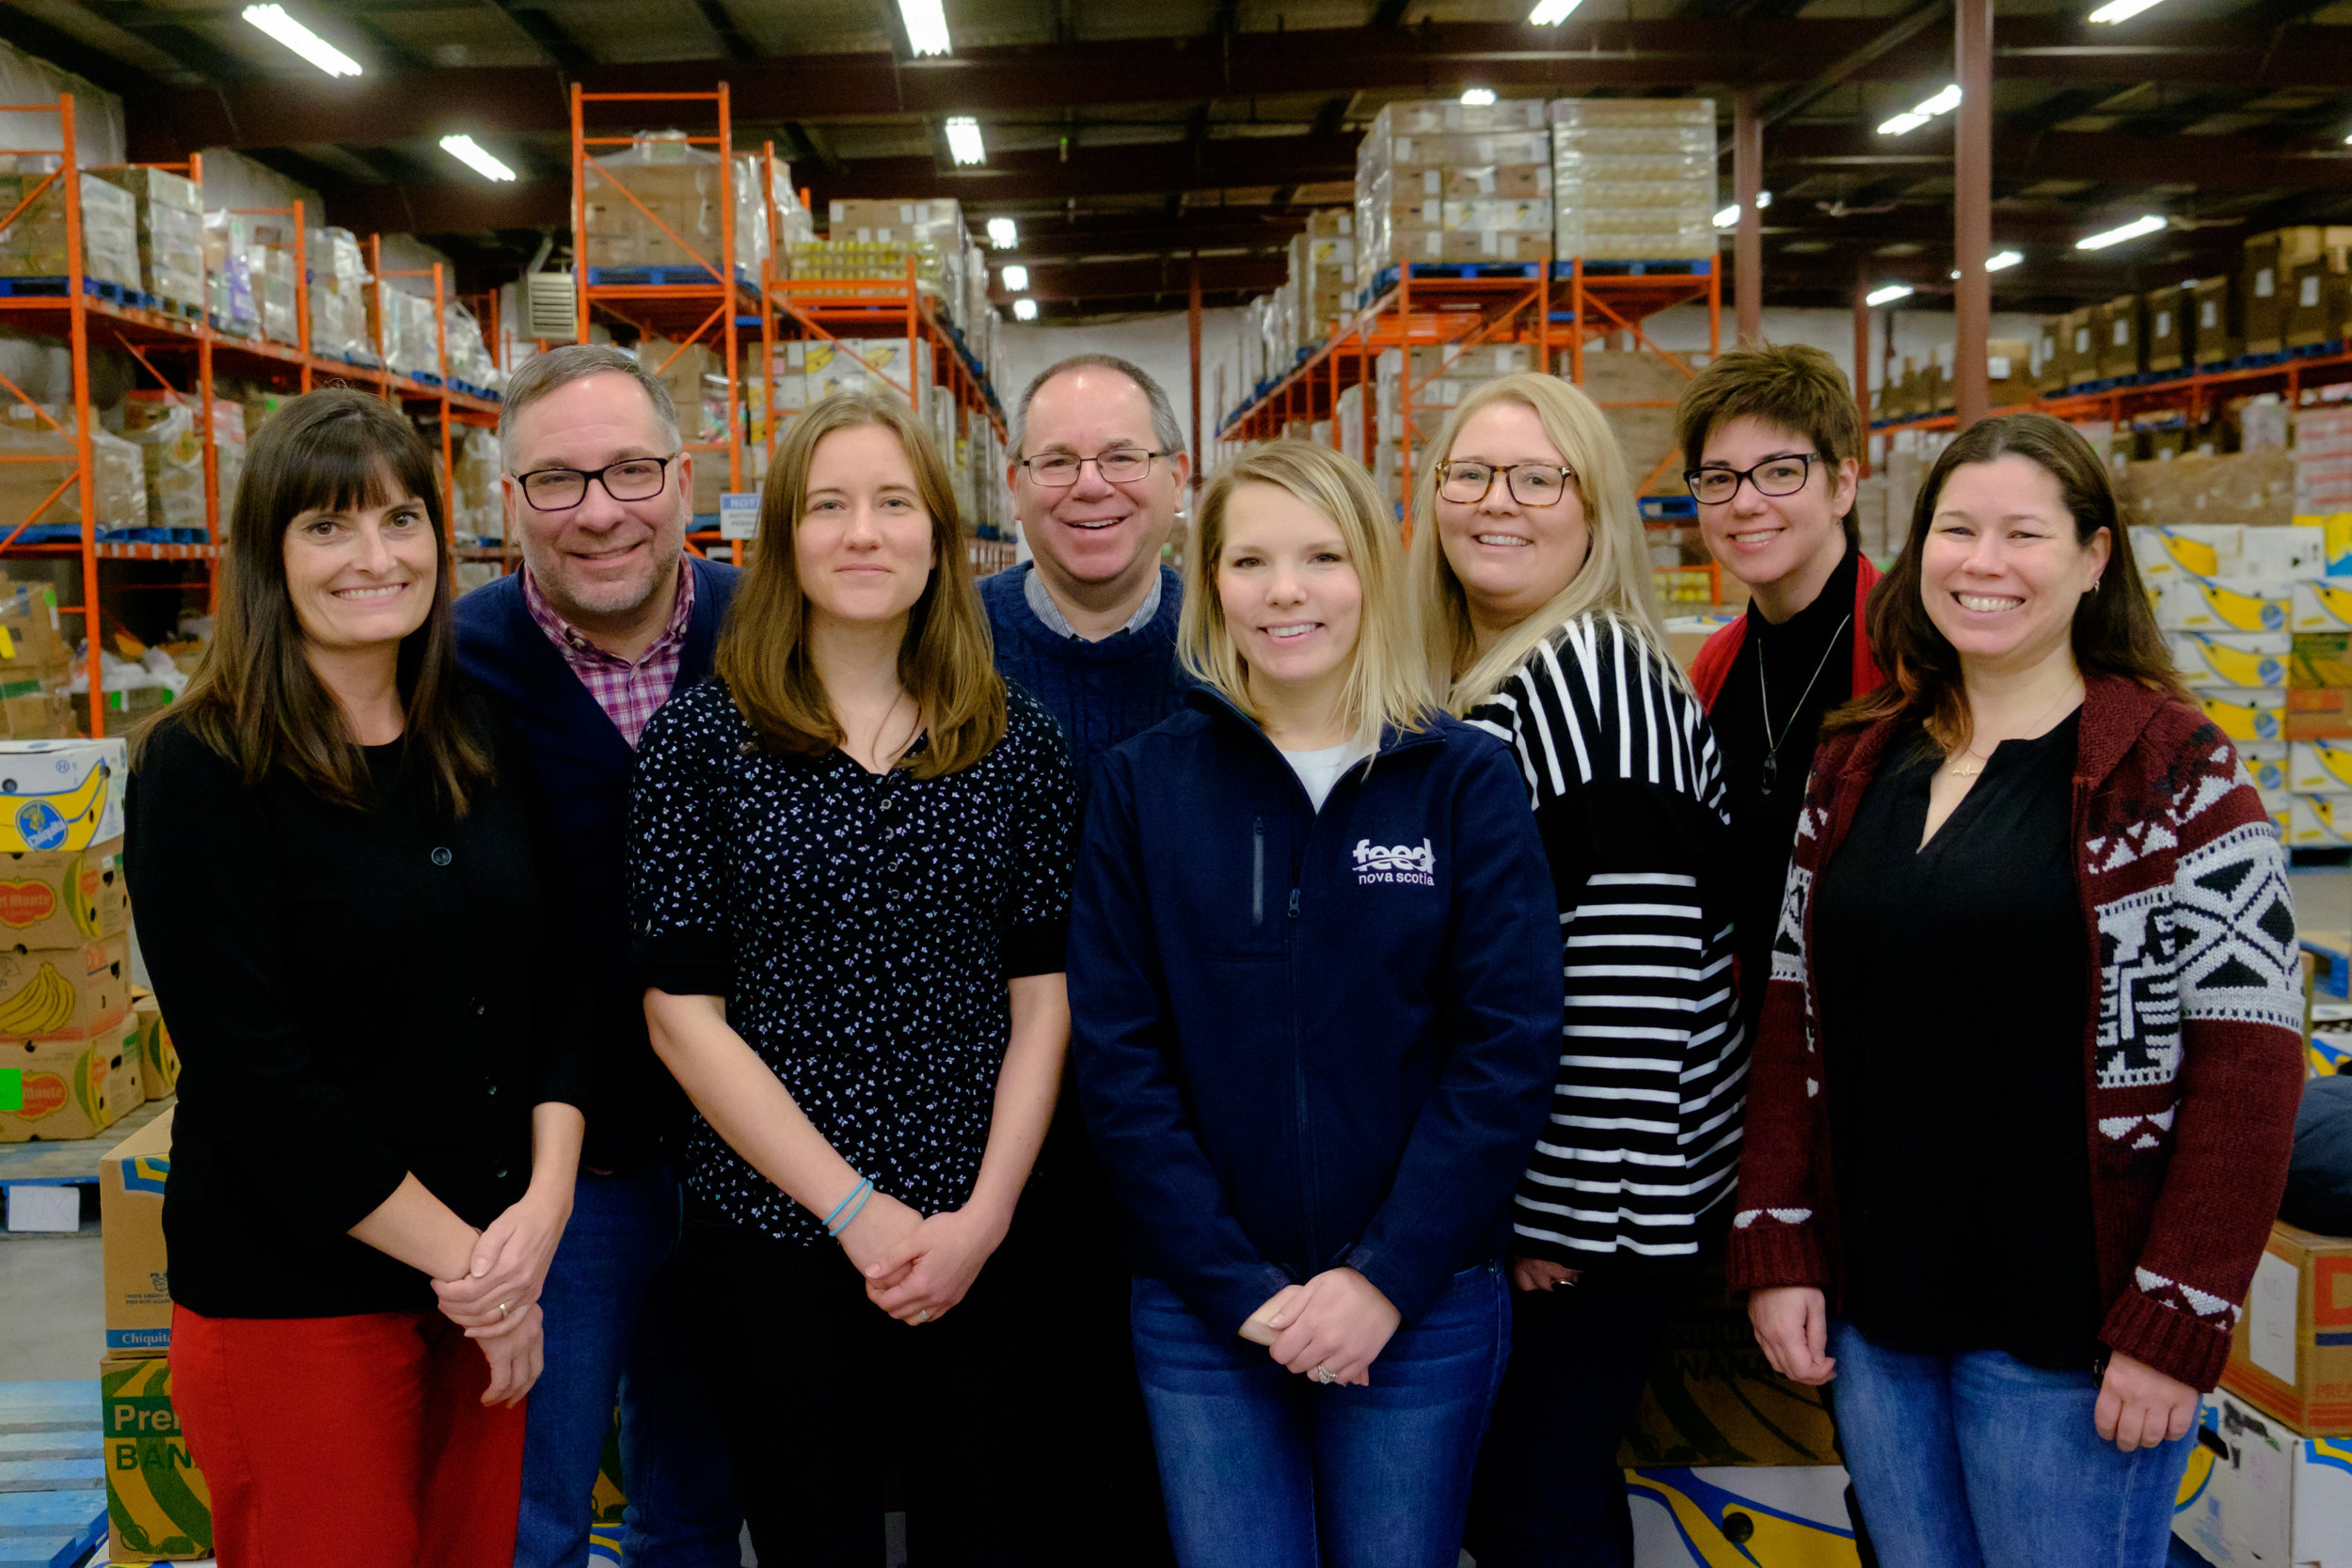 VMPNS board directors are passionate about volunteer engagement in nova scotia.